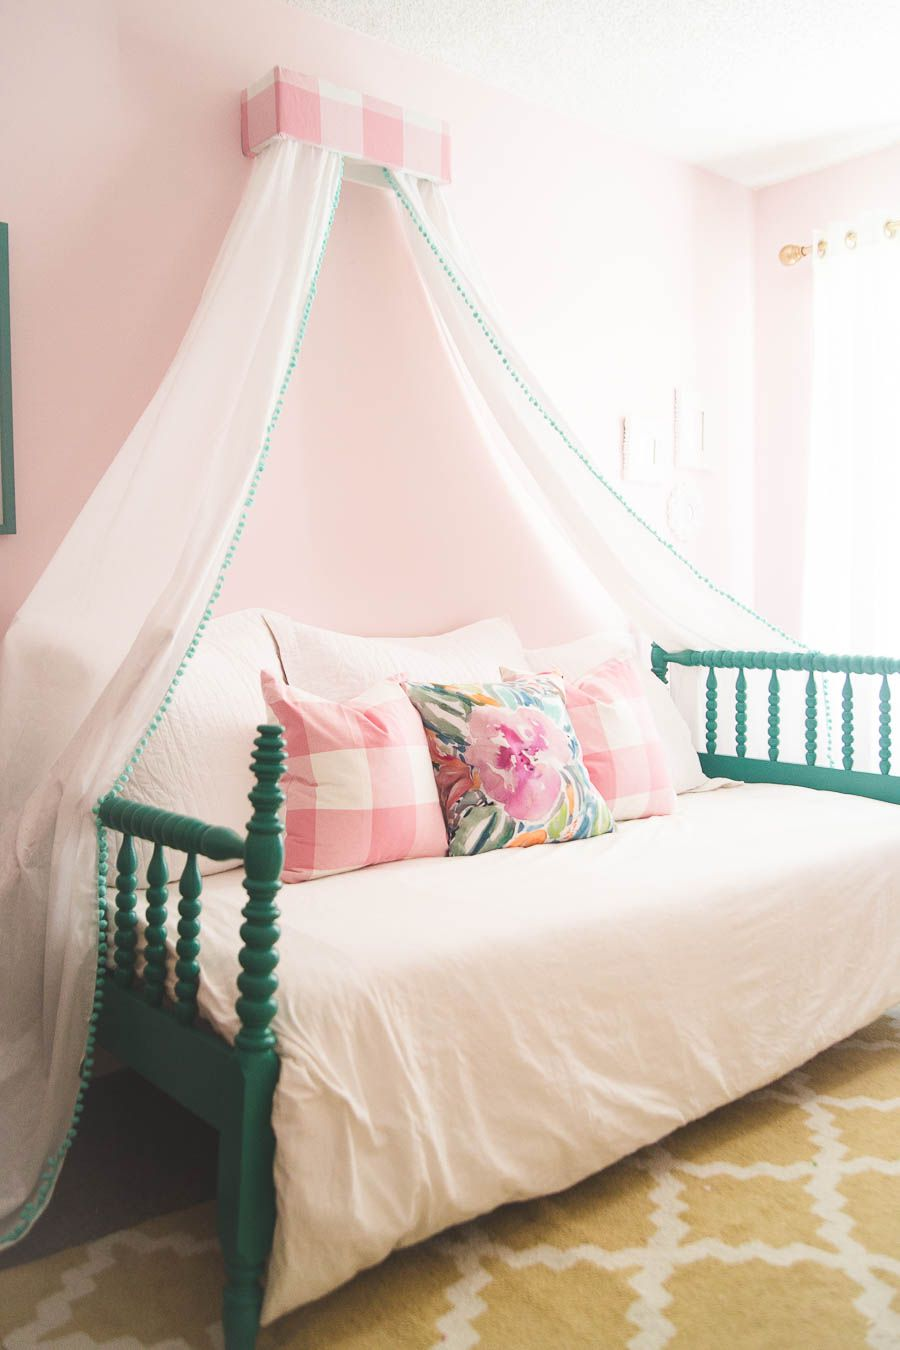 Diy Canopy Headboard